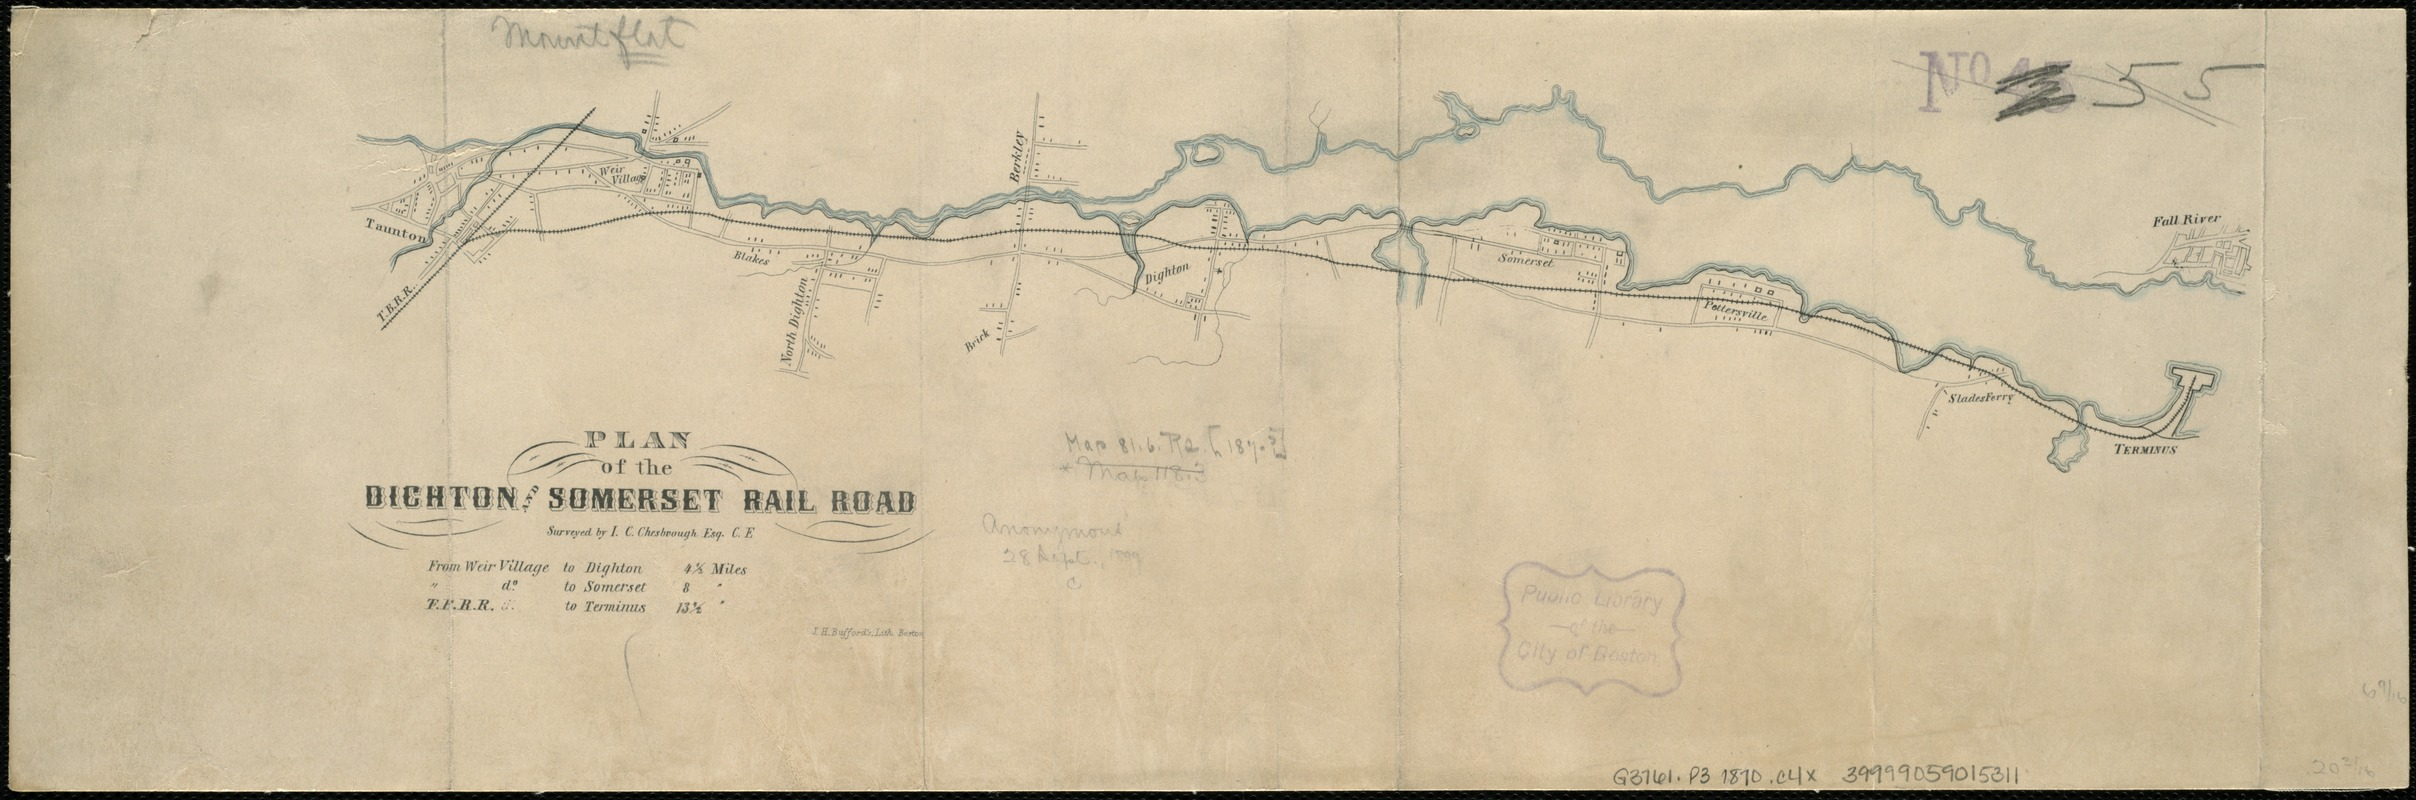 Plan of the Dighton and Somerset rail road